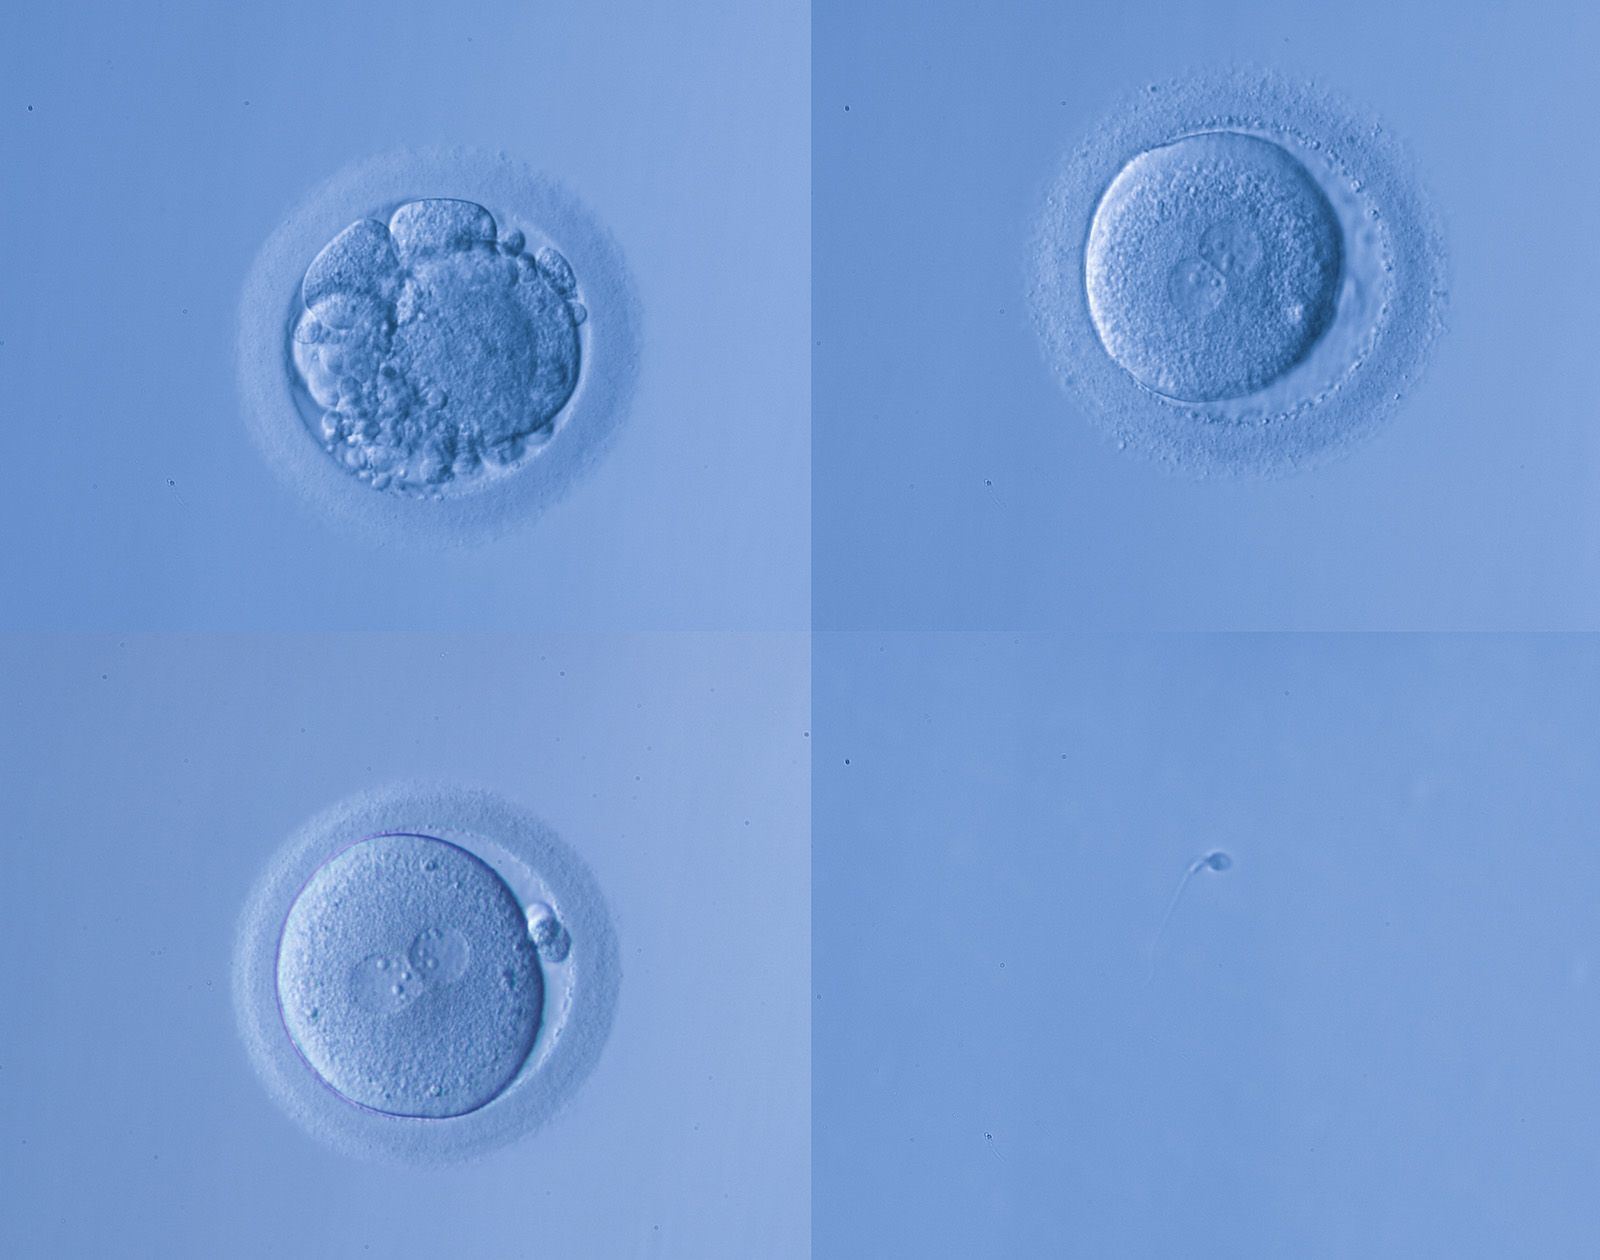 An egg dividing into an embryo